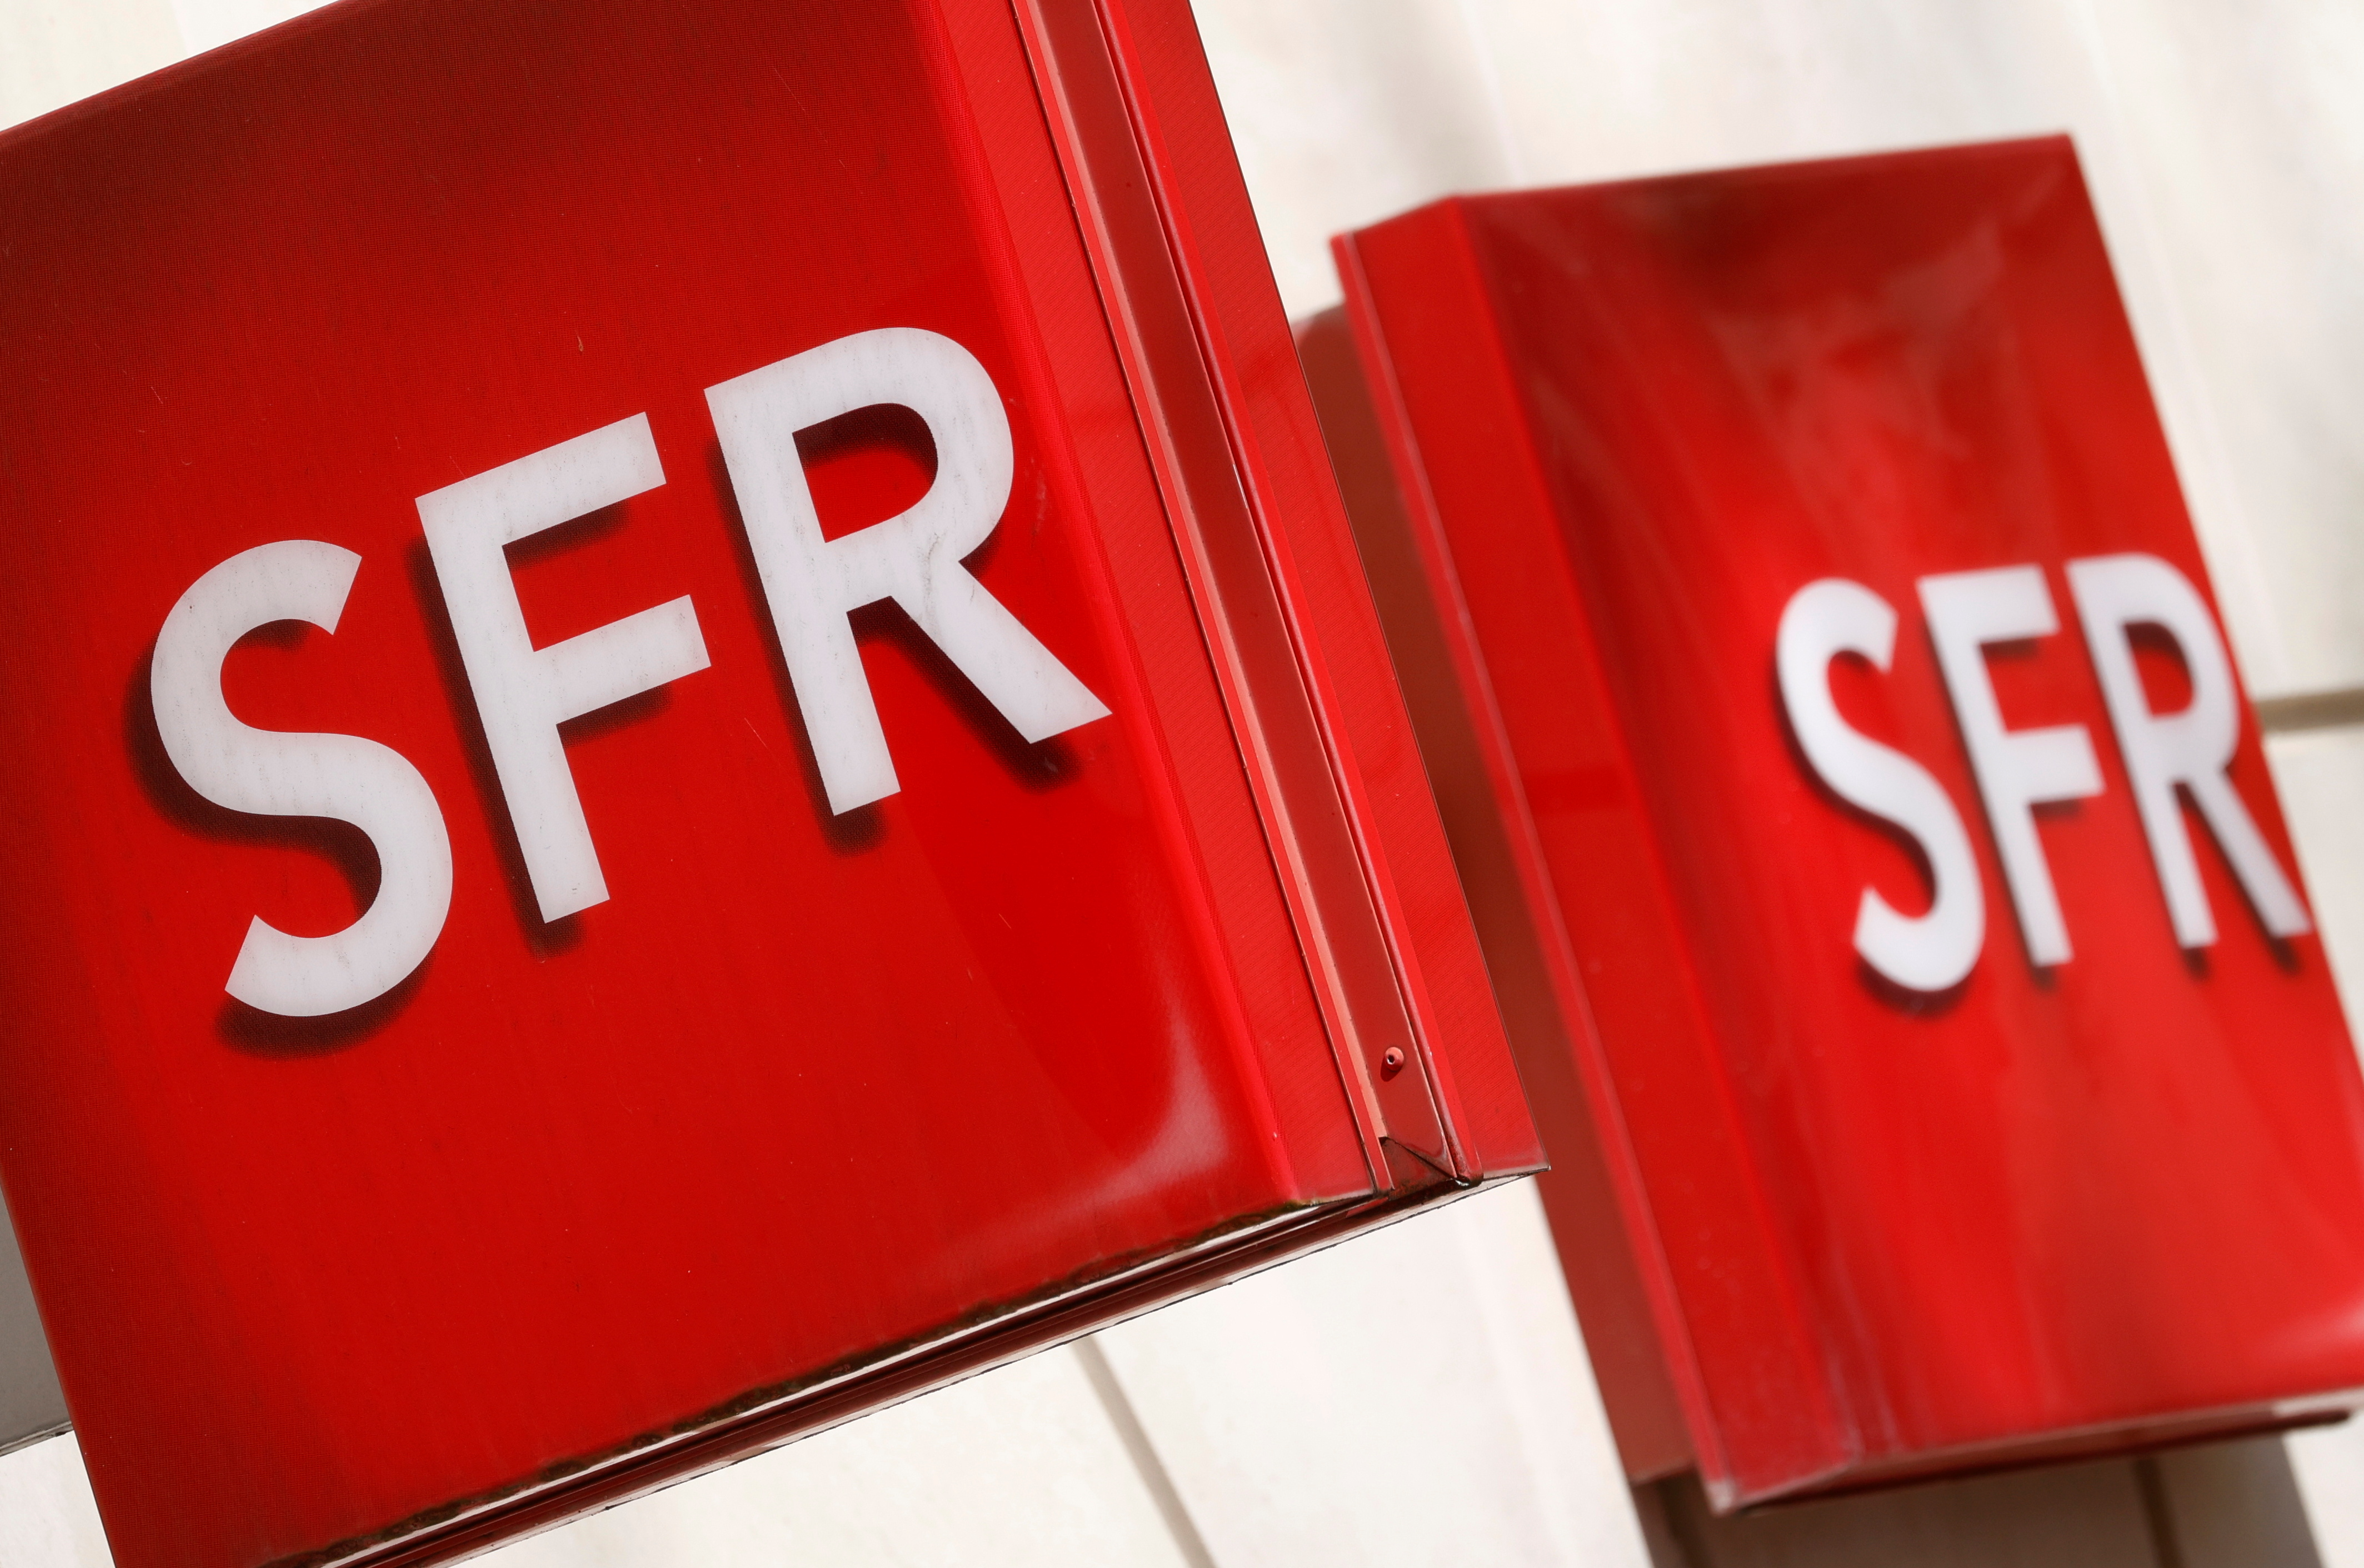 Logos of French telecoms operator SFR are pictured on a shop in Niort, France, March 4, 2021. REUTERS/Stephane Mahe